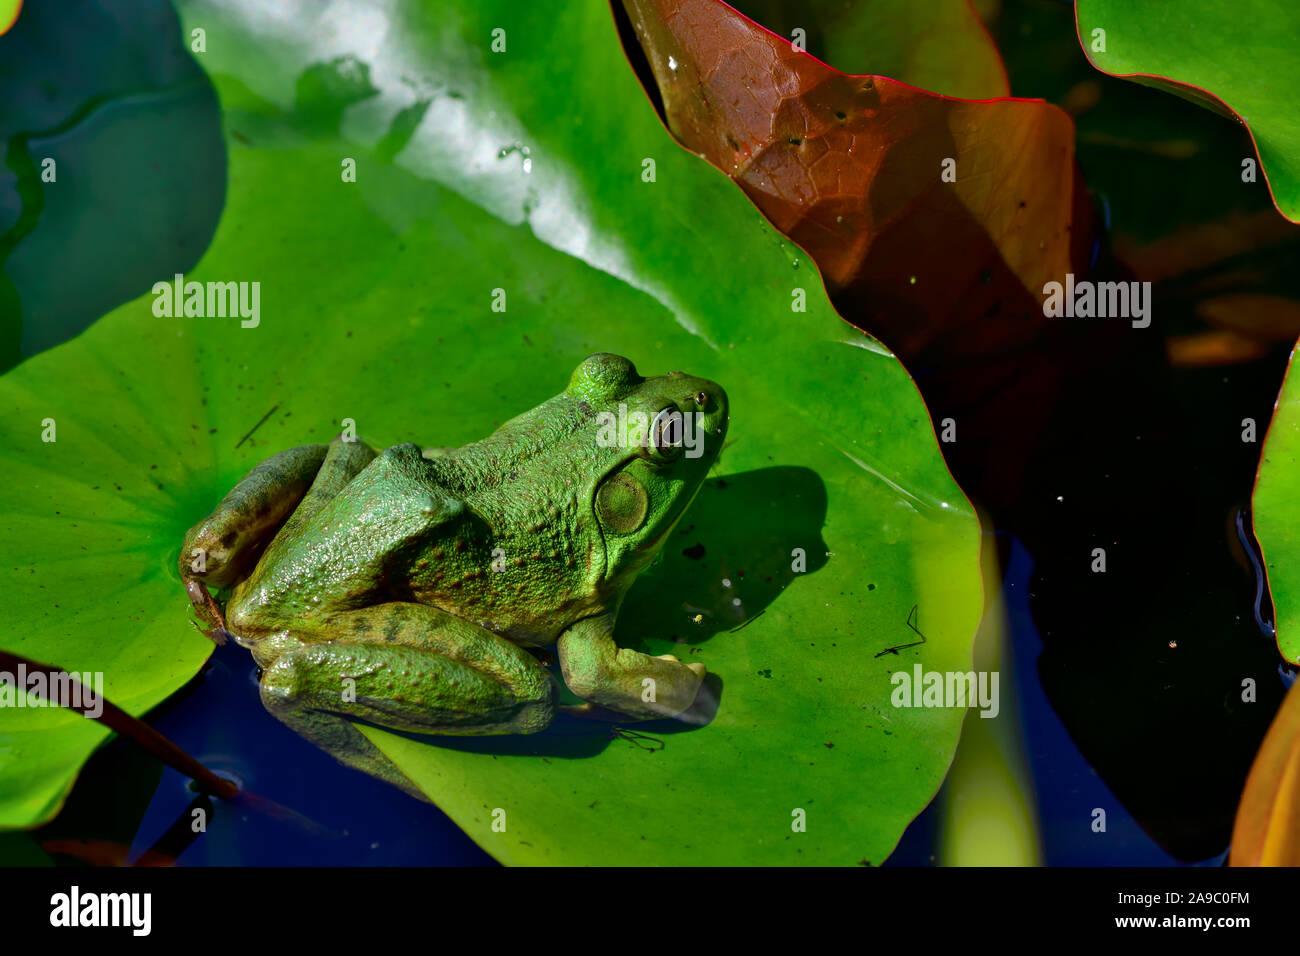 """A green frog """" Lithobates clamitans"""", sitting on a geen lily pad in a pond on Vancouver Island British Columbia, Canada. Stock Photo"""